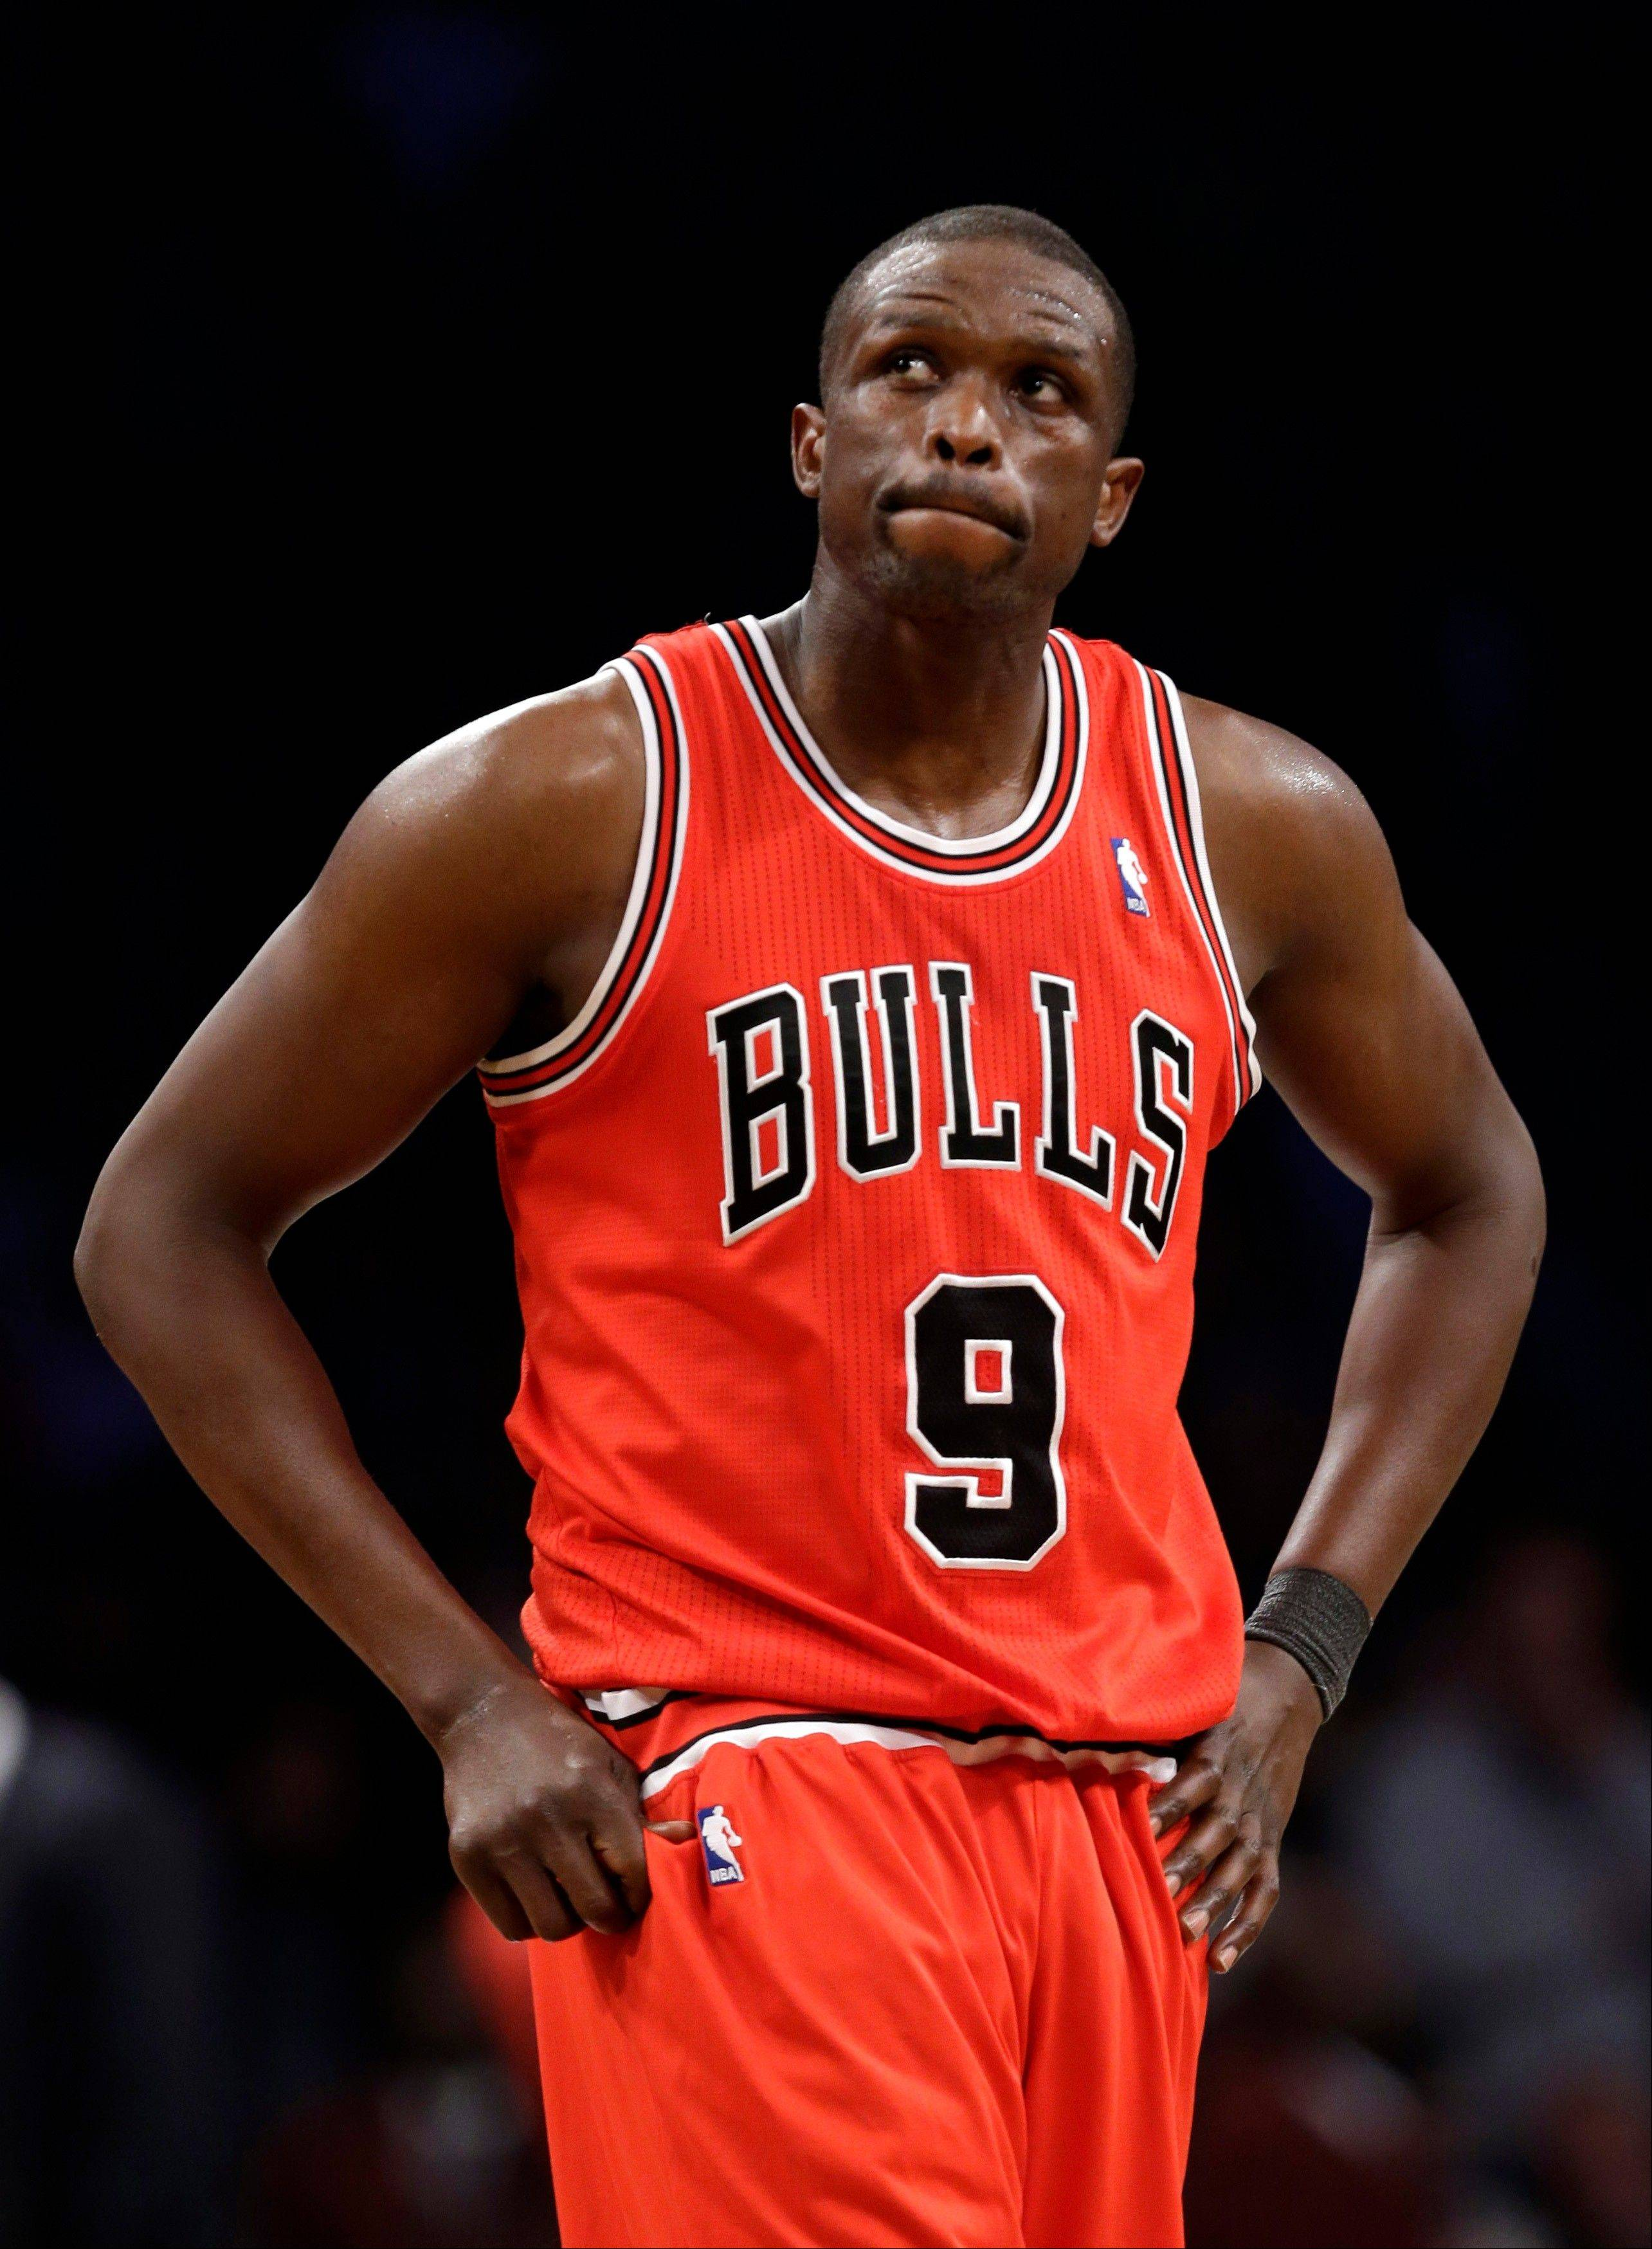 Bulls forward Luol Deng reacts in the second half of Game 5 against the Brooklyn Nets. Deng will not play in Game 2 against the Heat tonight.